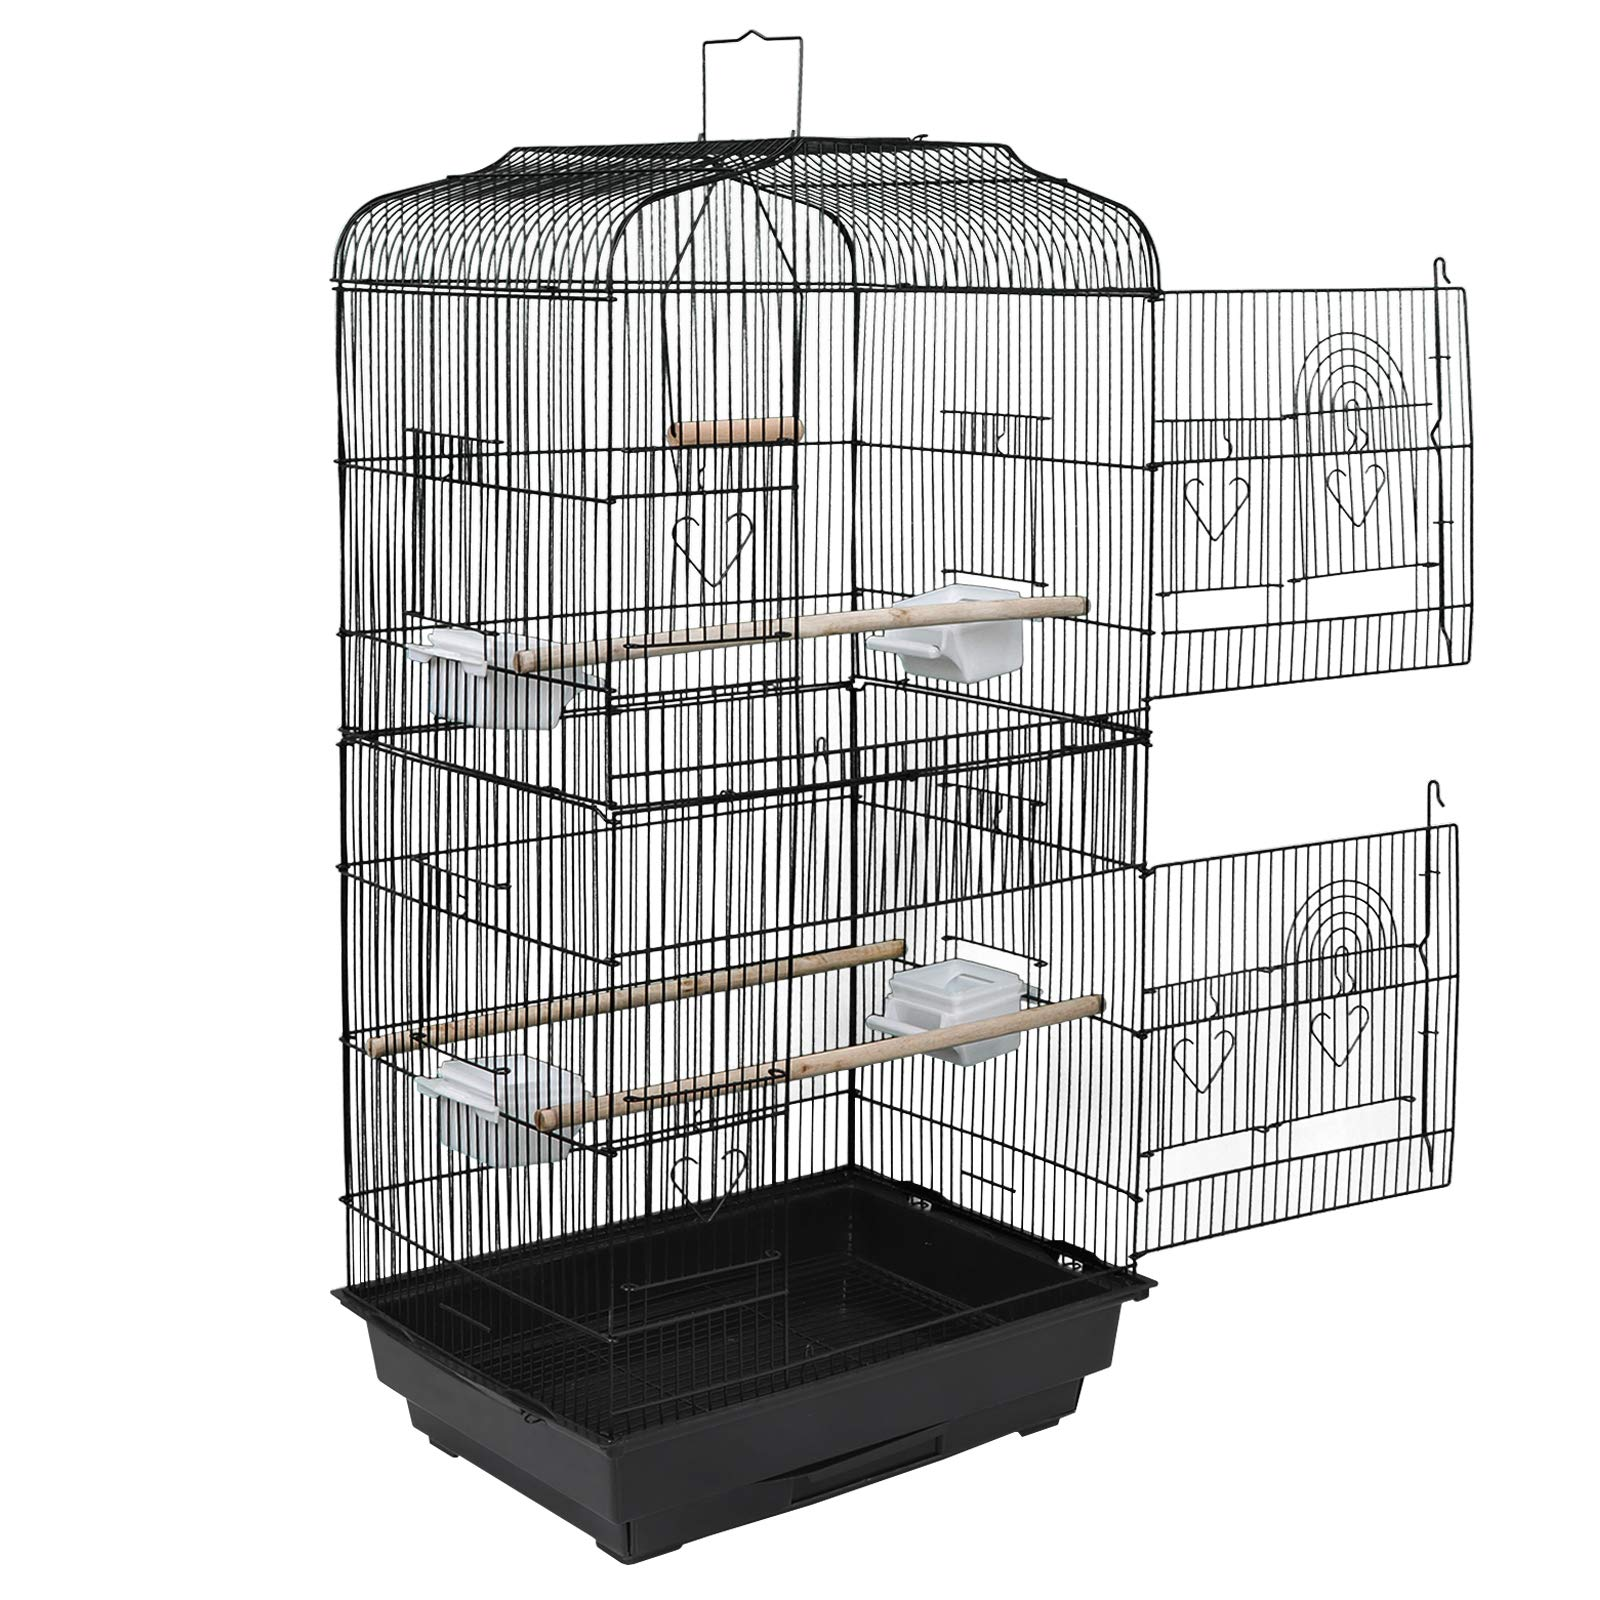 ZENY 59.3'' Bird Cage with Rolling Stand Wrought Iron Pet Bird Cage Parrot Cockatiel Cockatoo Parakeet Finches Birdcage Medium Pet House by ZENY